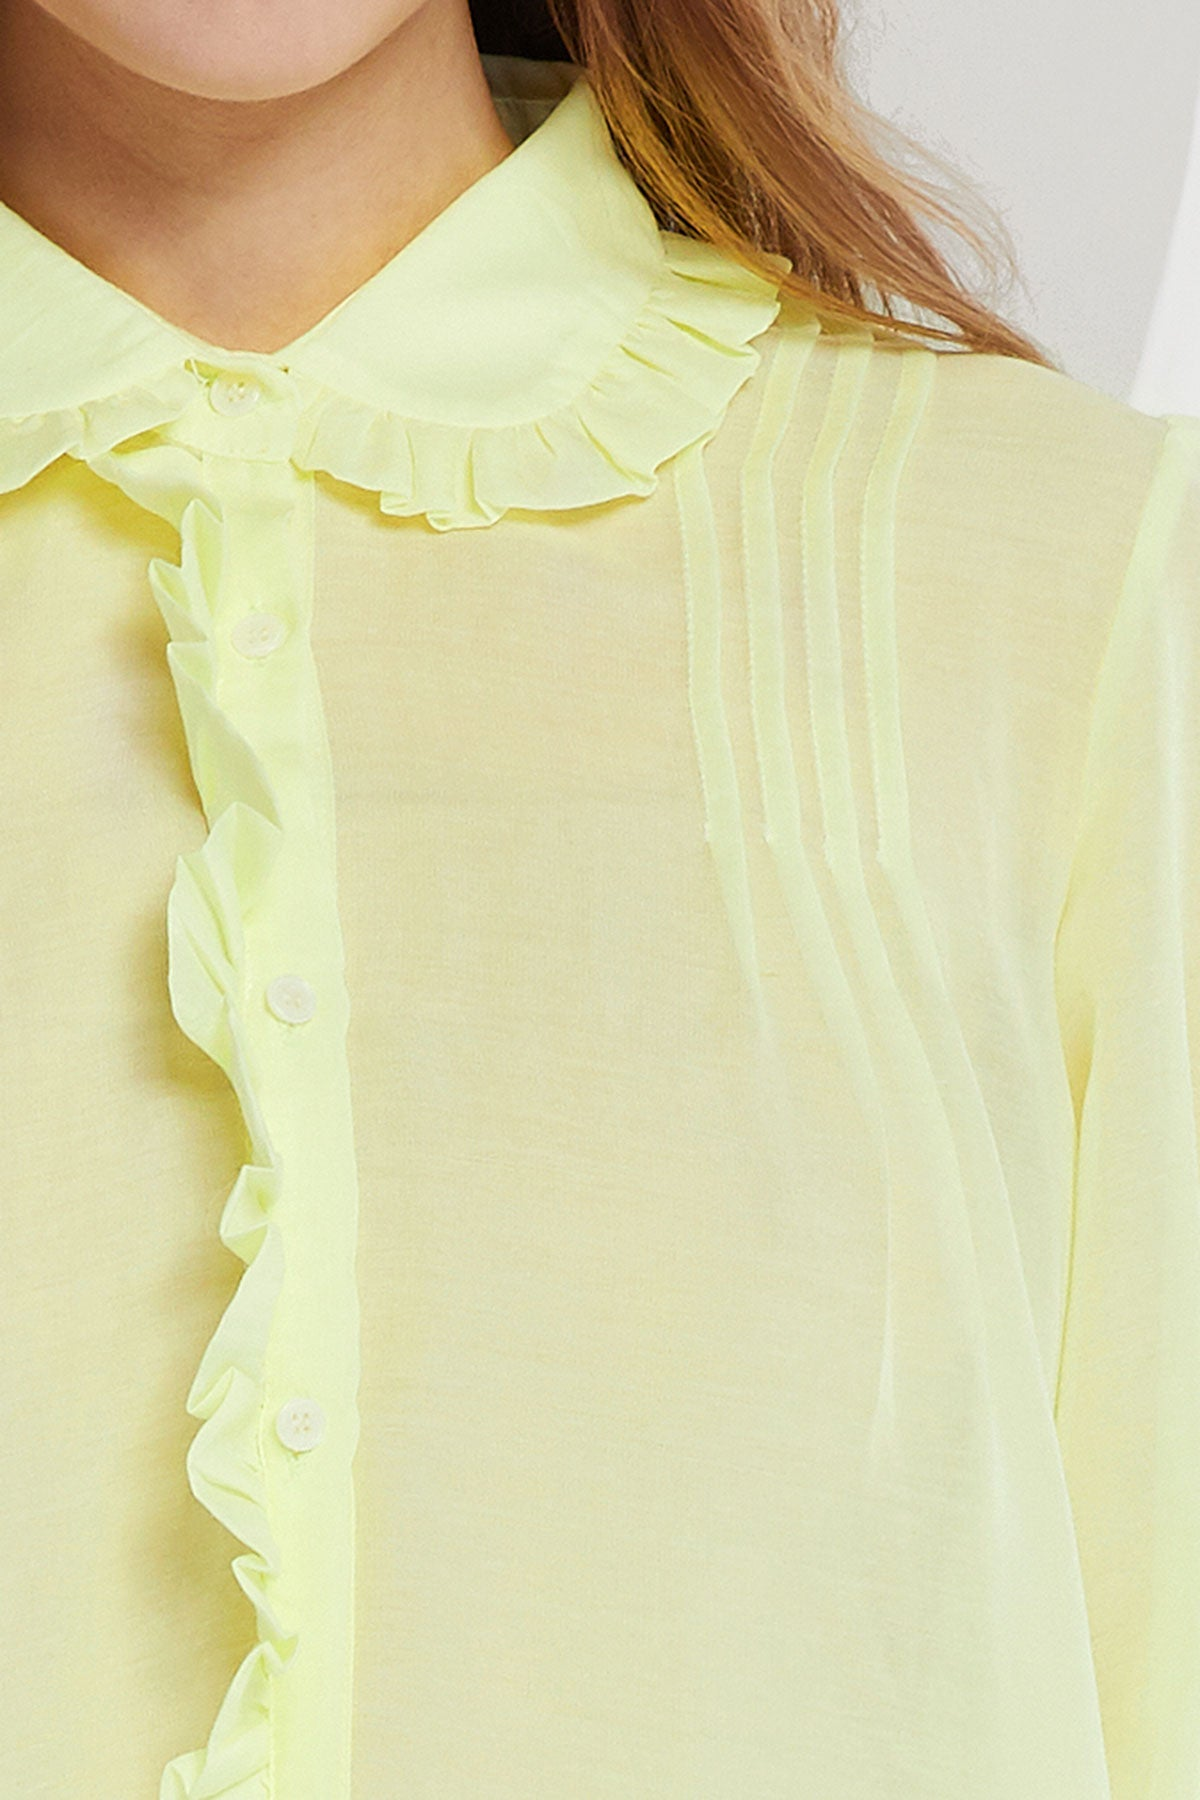 Jennet Sheer Blouse w/ Frilled Collar (Pre-Order)